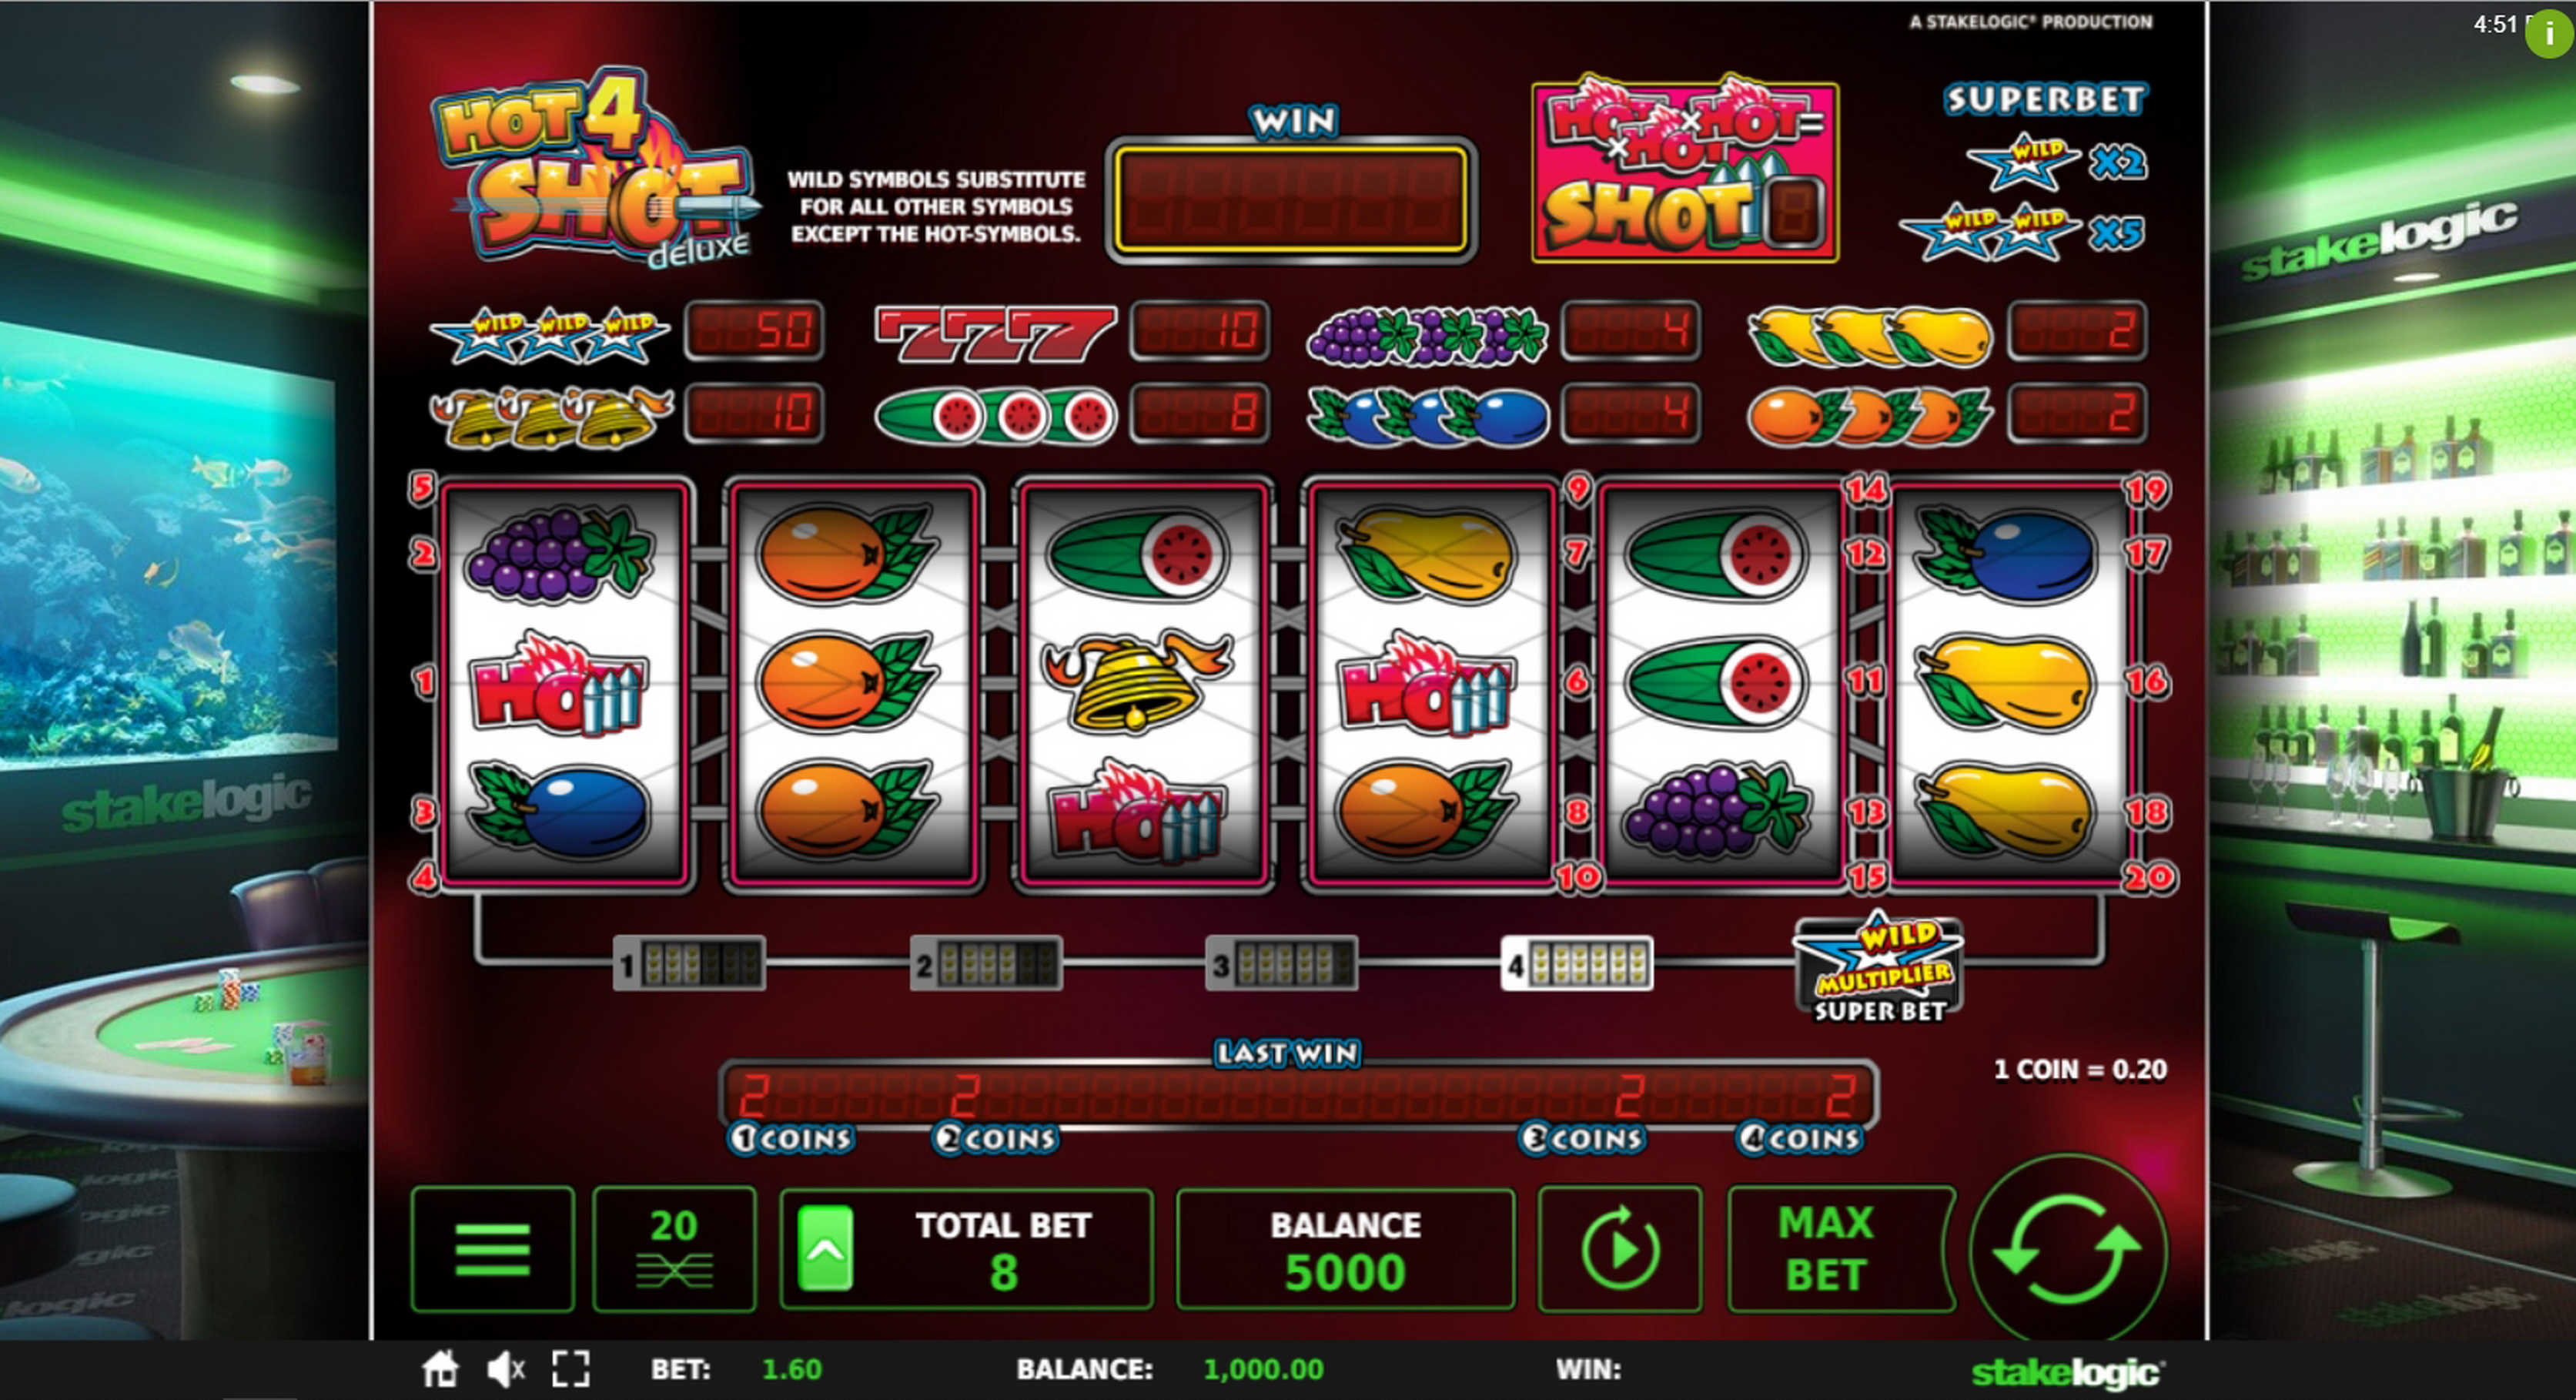 Reels in Hot4Shot Deluxe Slot Game by Stakelogic